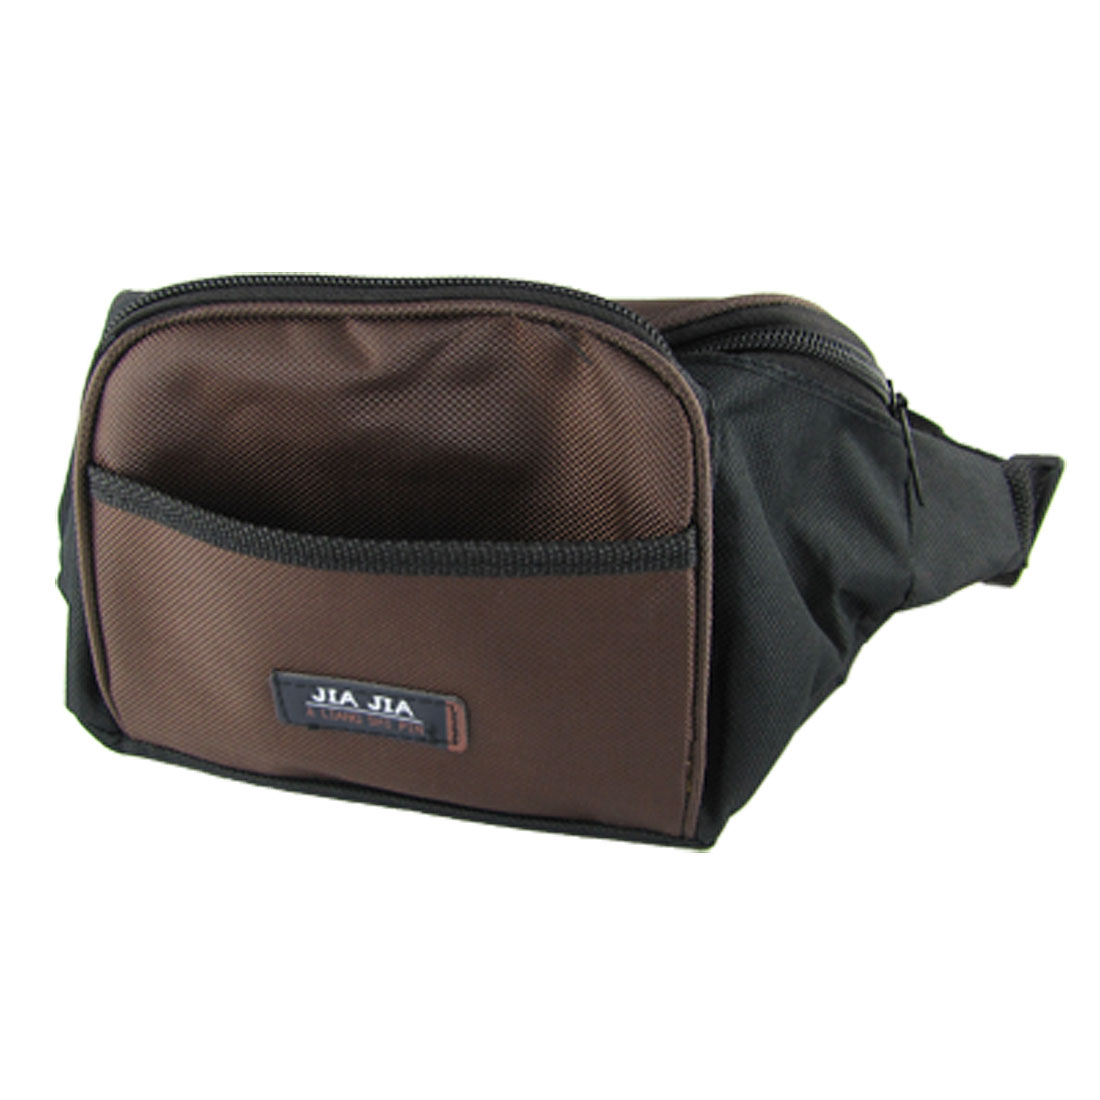 Chocolate Black 4 Pockets Style Nylon Zipper Waist Carrying Bag